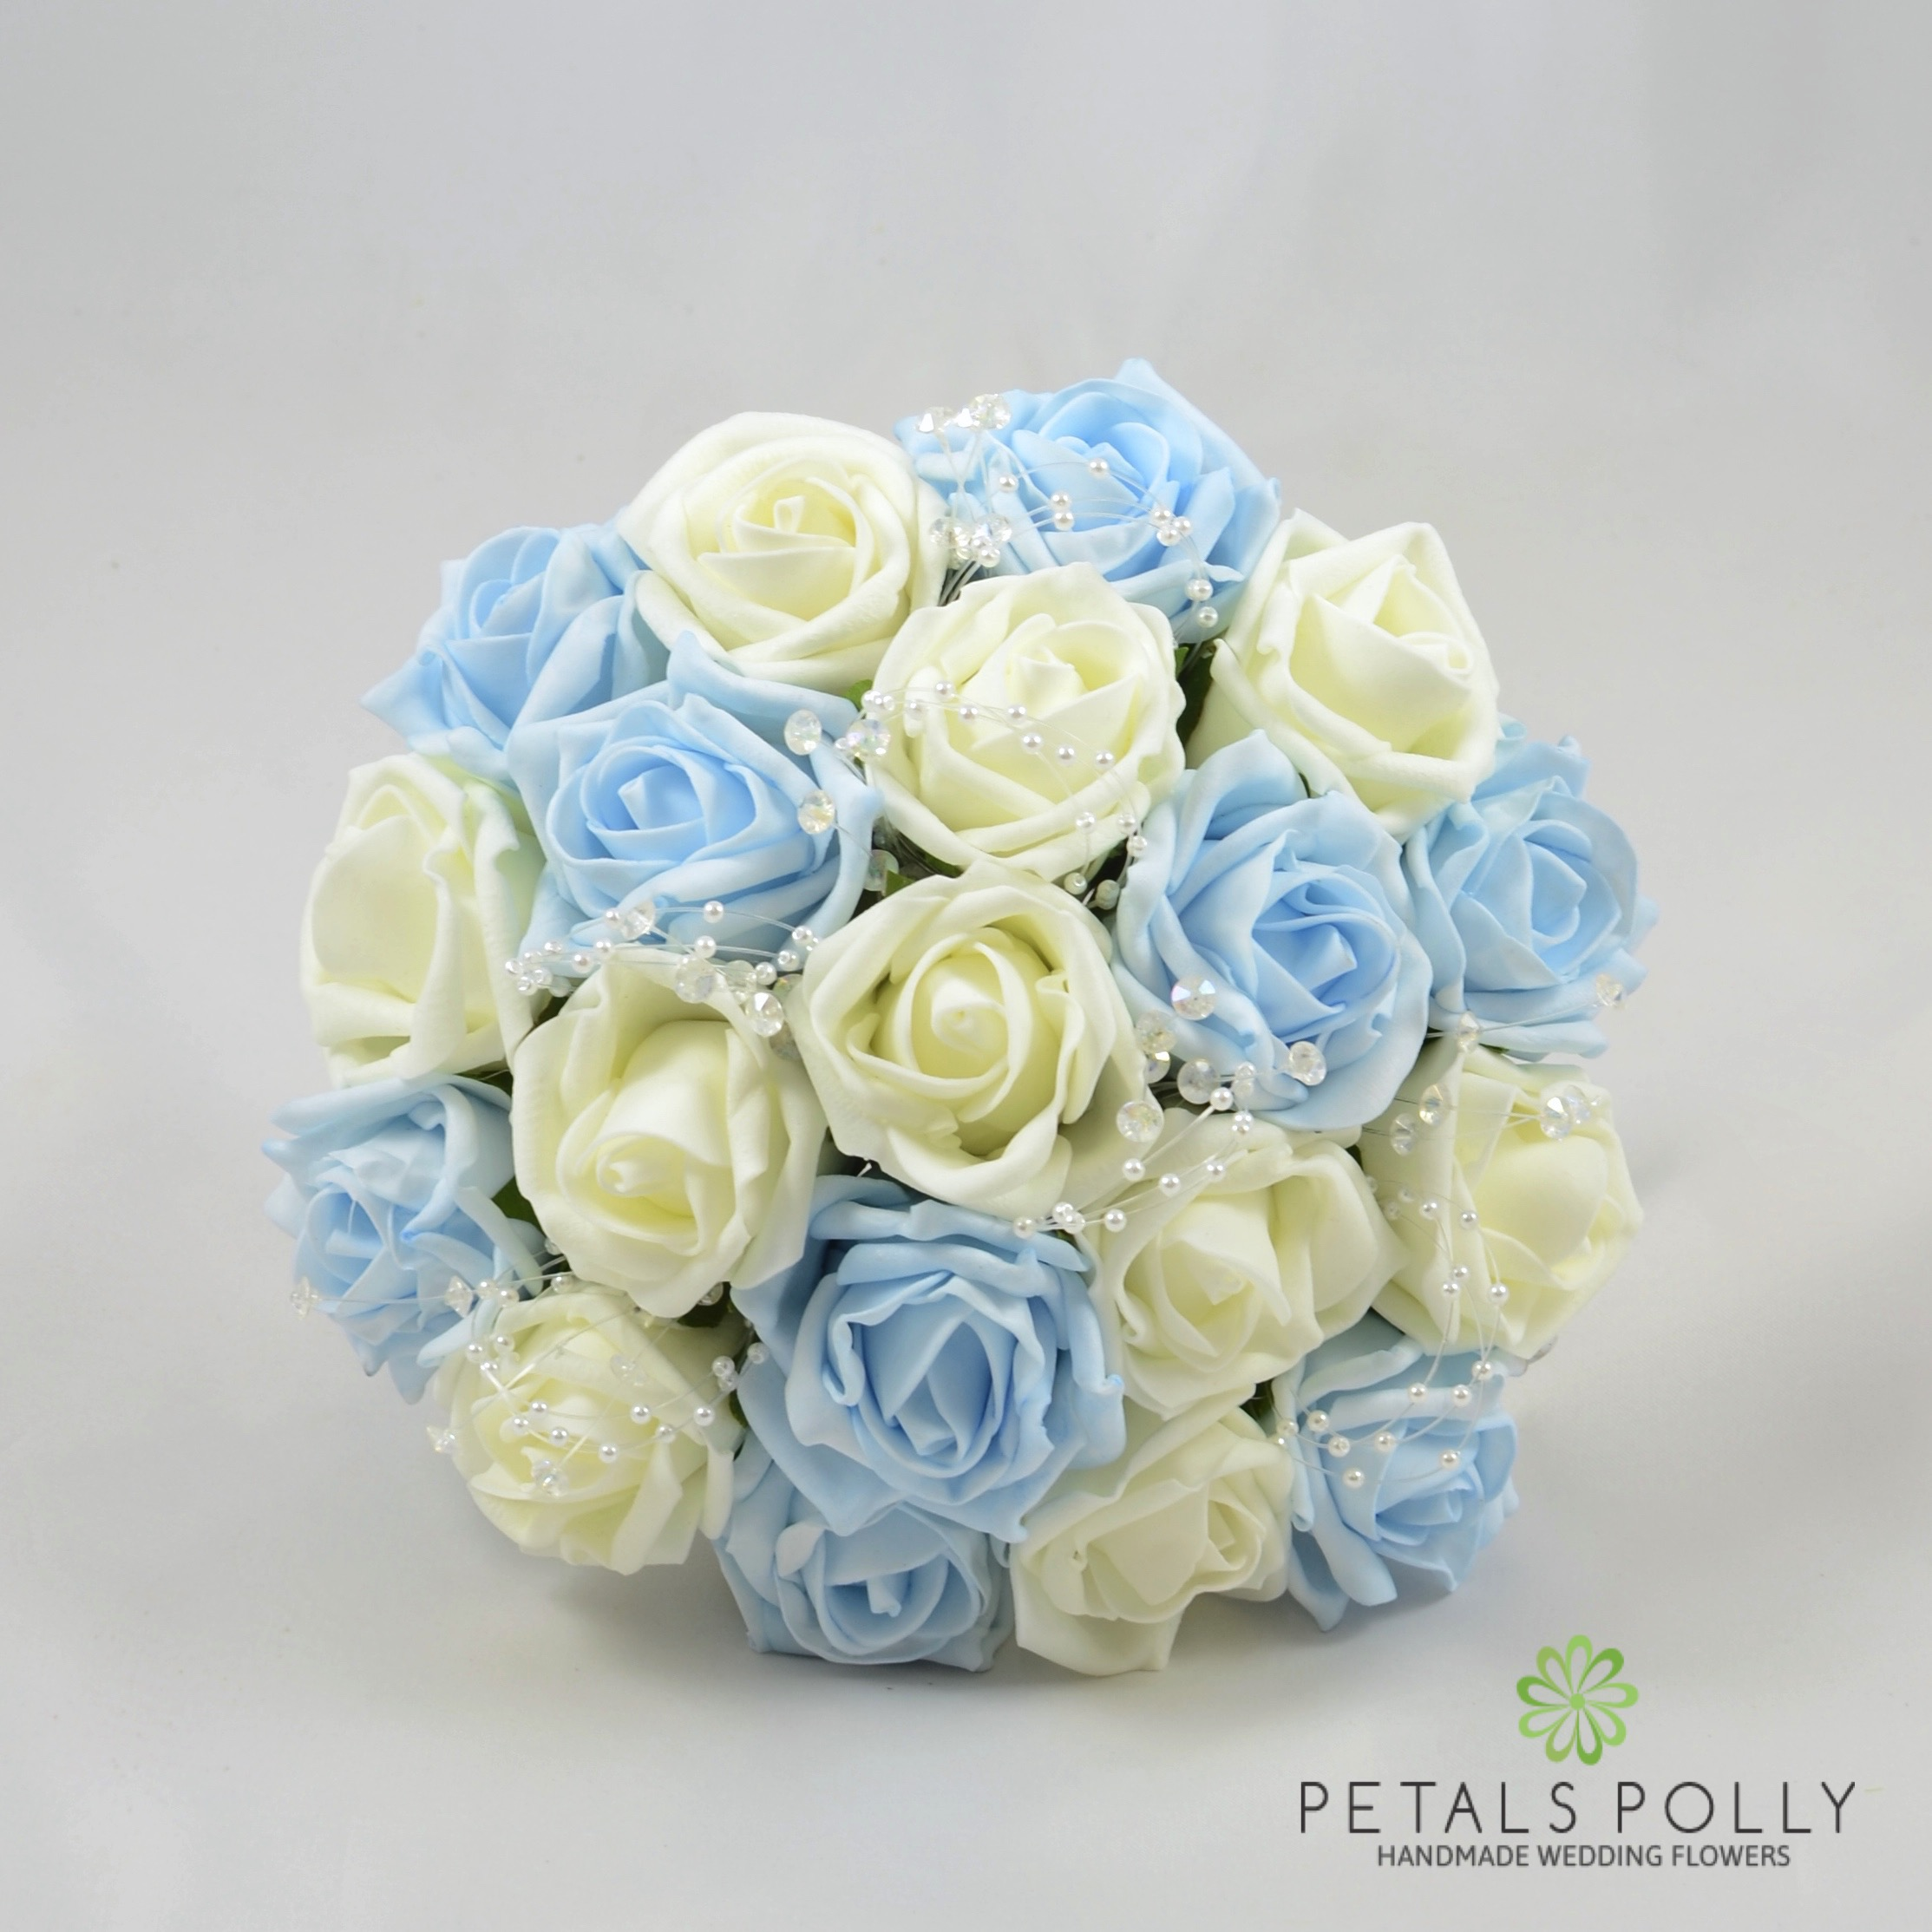 choose blue roses wedding bouquets for your wedding 8 - Choose Blue Roses Wedding Bouquets for Your Wedding